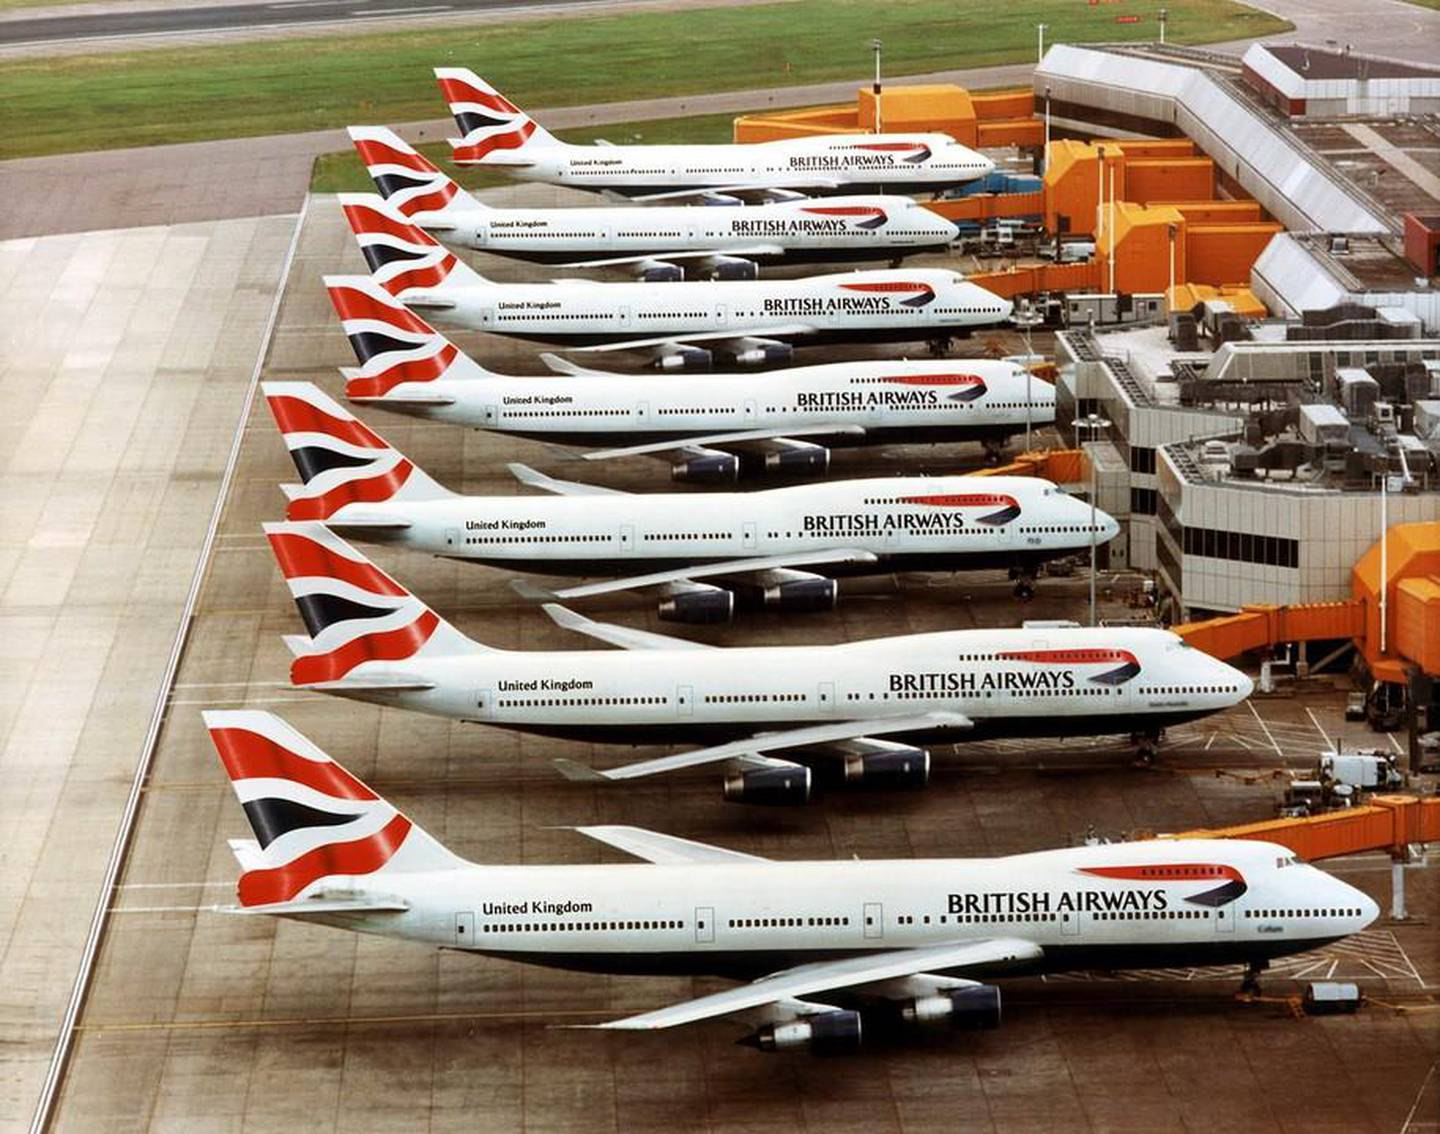 British Airways Boeing 747's at London Heathrow airport showing the new Chatham Dockyard tailfin designCredit: NewsCastwww.newscast.co.uk+44 (0)20 7608 1000No archiving